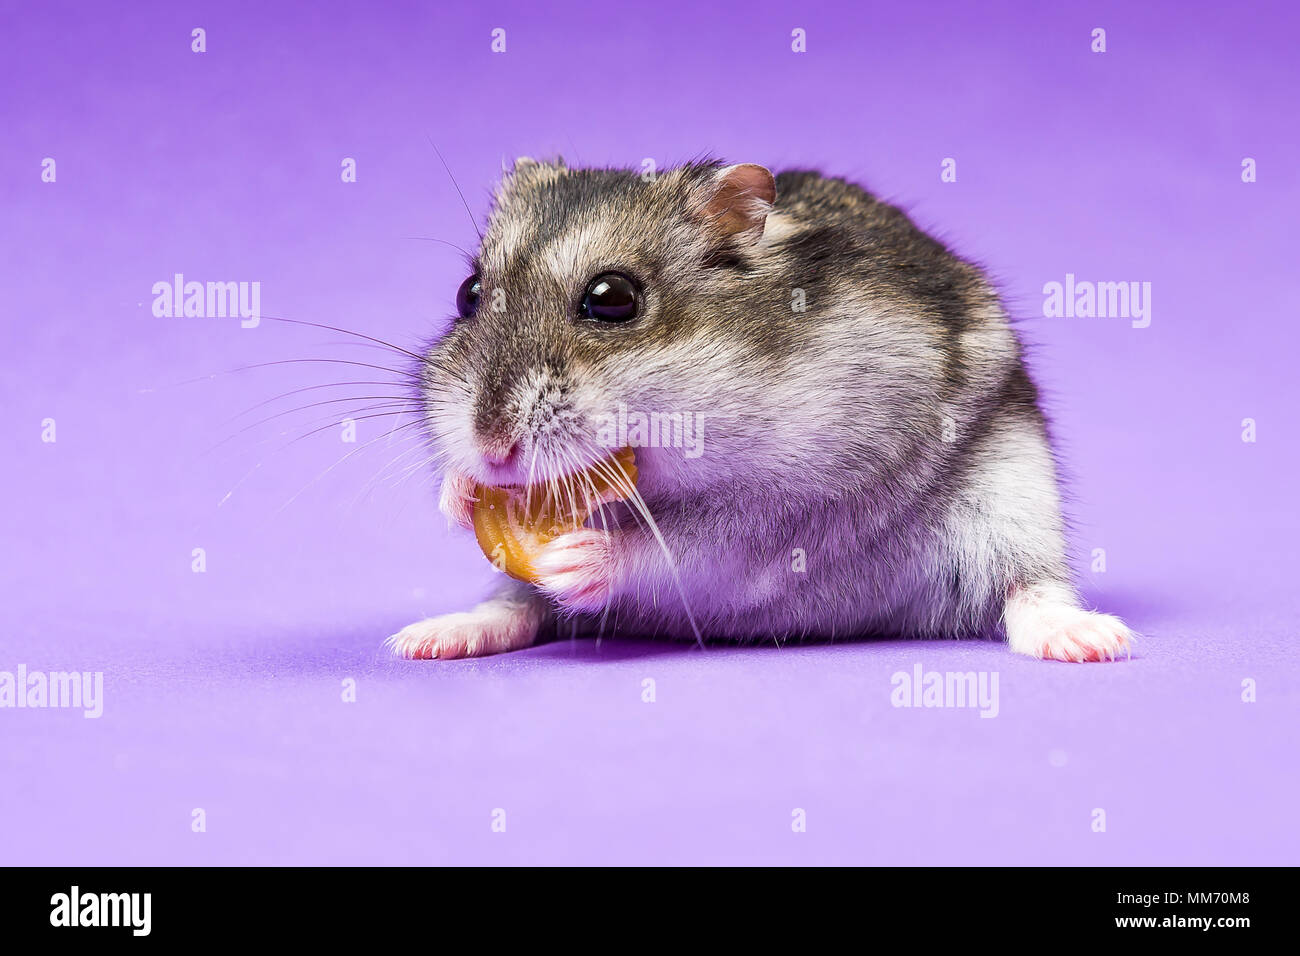 Hamster Cheeks Stock Photos & Hamster Cheeks Stock Images